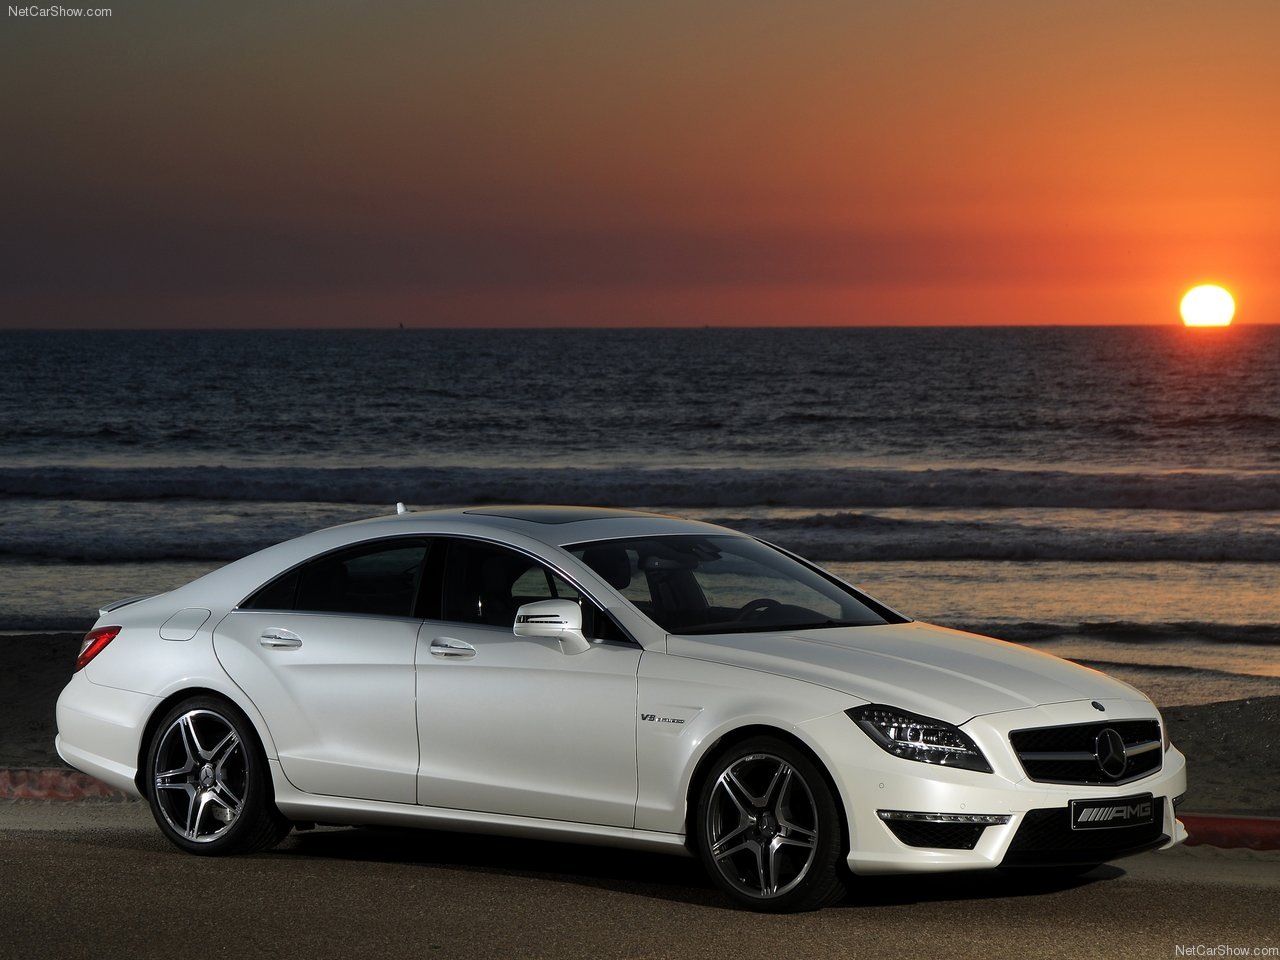 https://1.bp.blogspot.com/-tfQYx91Xs_0/TWiaCmXANzI/AAAAAAACLJE/OkS0-ypYvd0/s1600/Mercedes-Benz-CLS63_AMG_US_Version_2012_1280x960_wallpaper_03.jpg